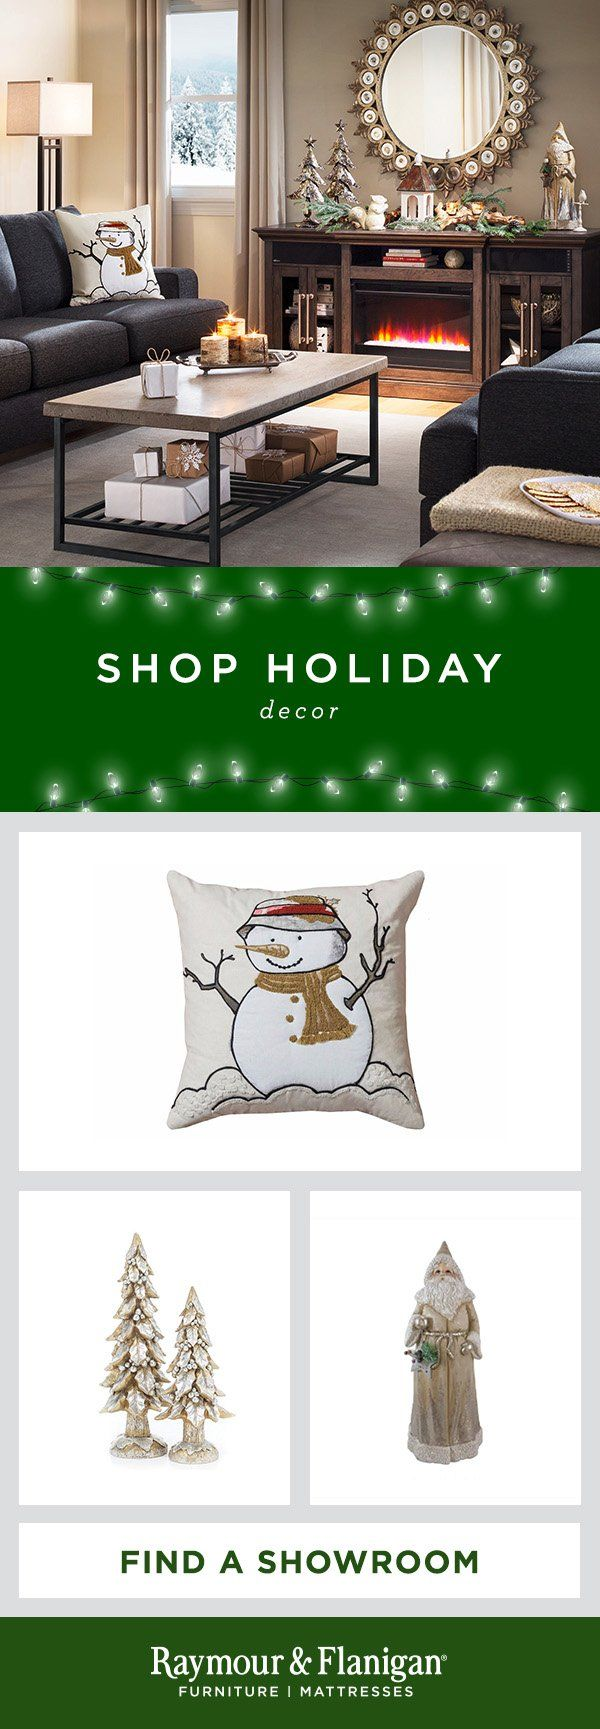 Our Holiday Accessories Are In Stores Now Visit Your Local Showroom Today To Decorate Your Home For The Holidays Zen Decor Decor Cozy House